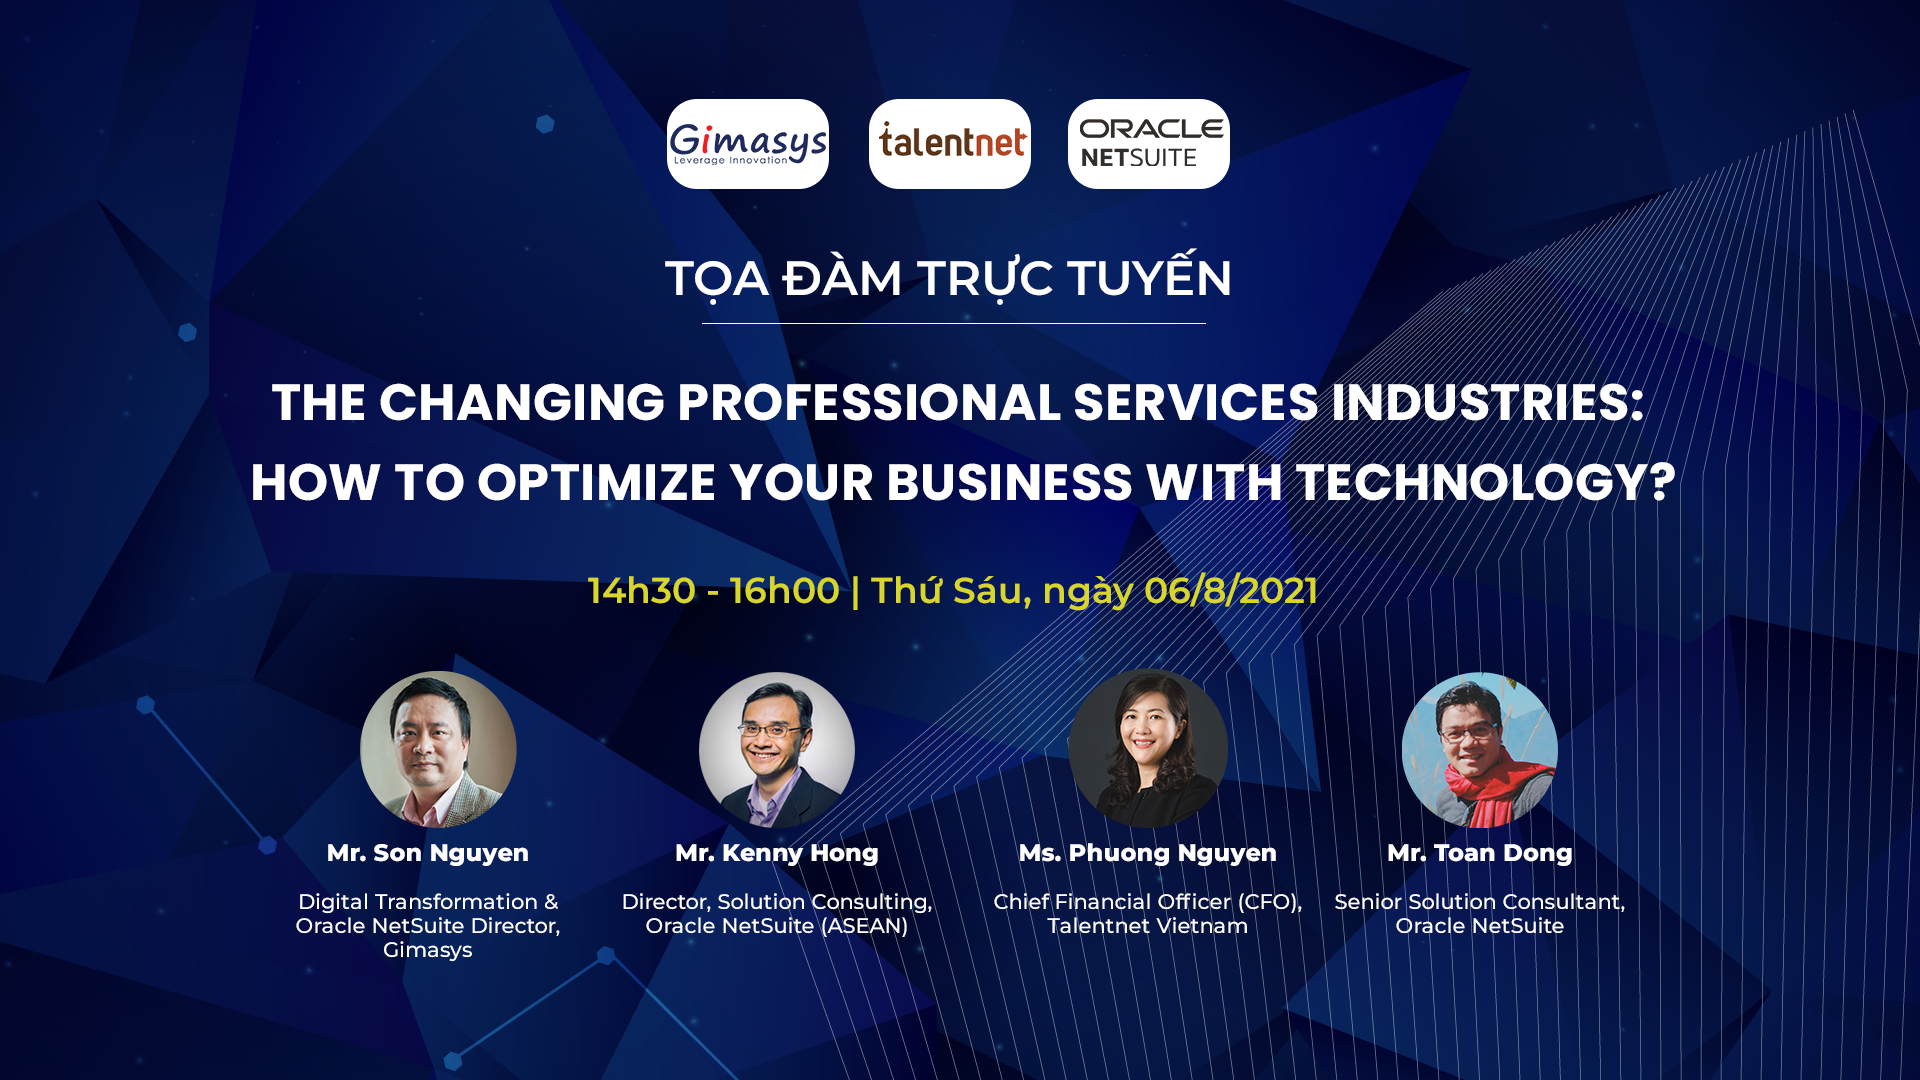 """Tọa đàm """"The Changing Professional Services Industries: How to optimize your business with technology?"""" ngày 06/8/2021"""